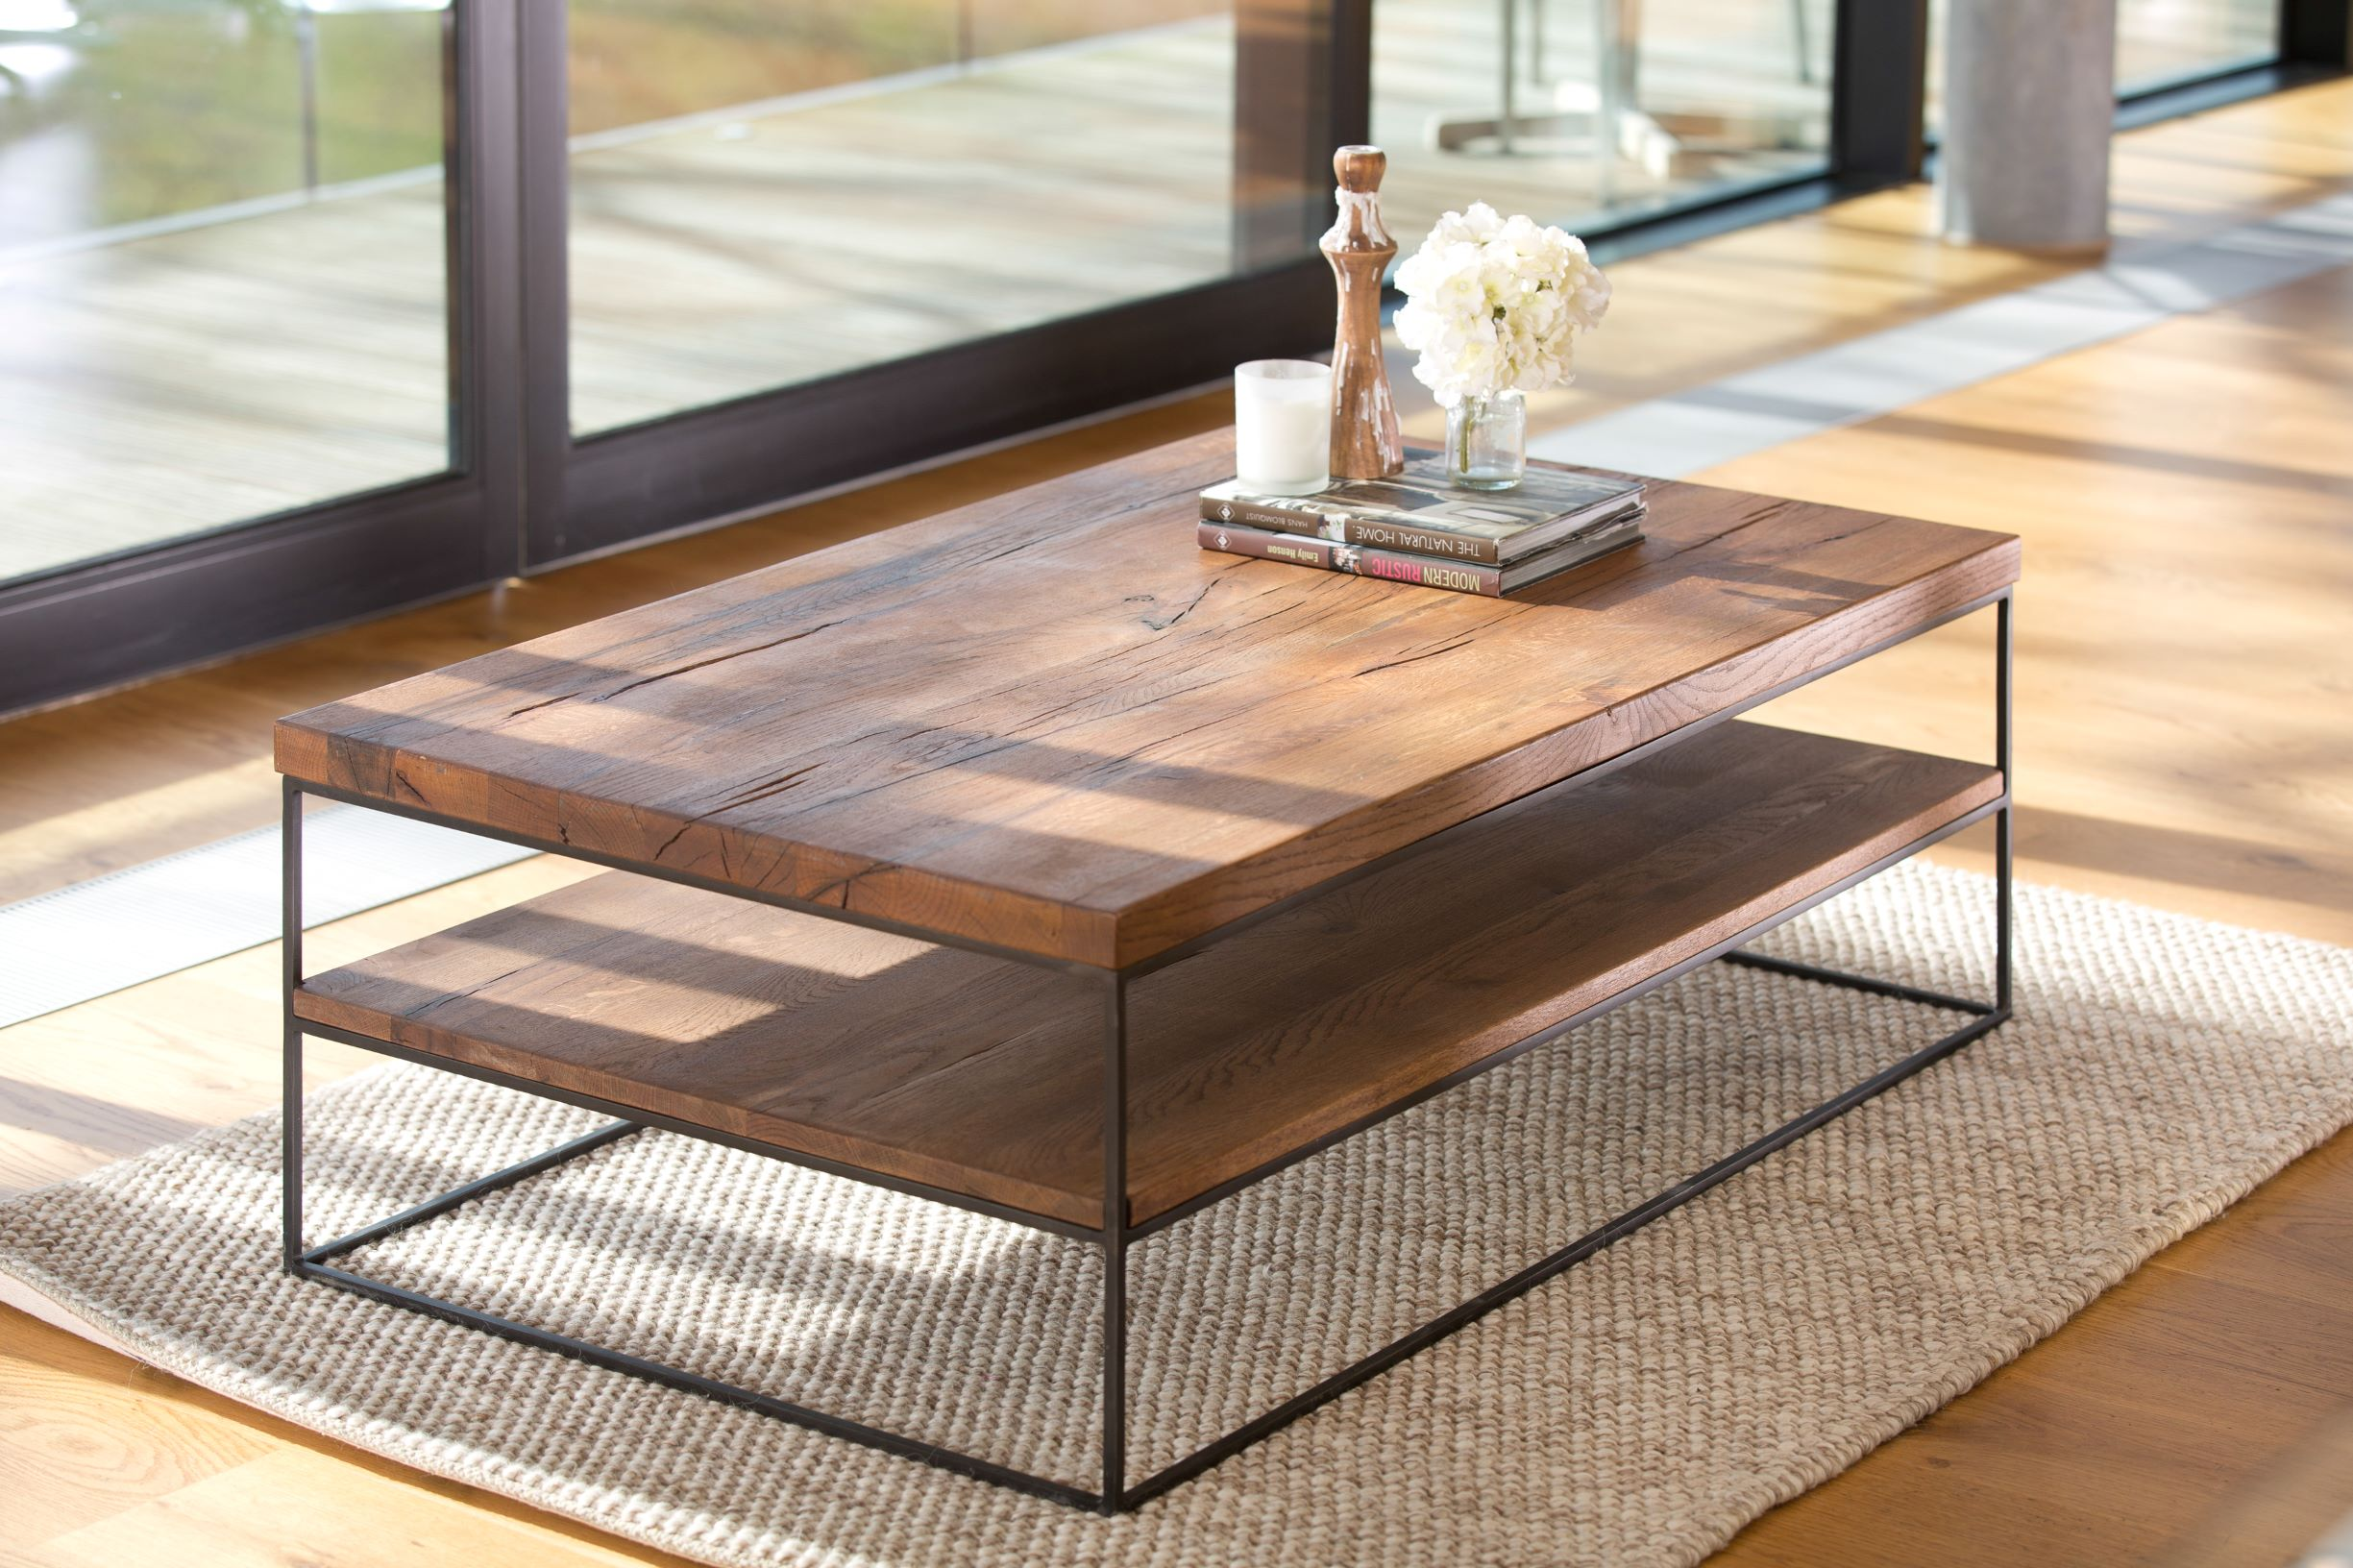 CORMAR OILED OAK COFFEE TABLE - L120cm x D70cm x H40cm